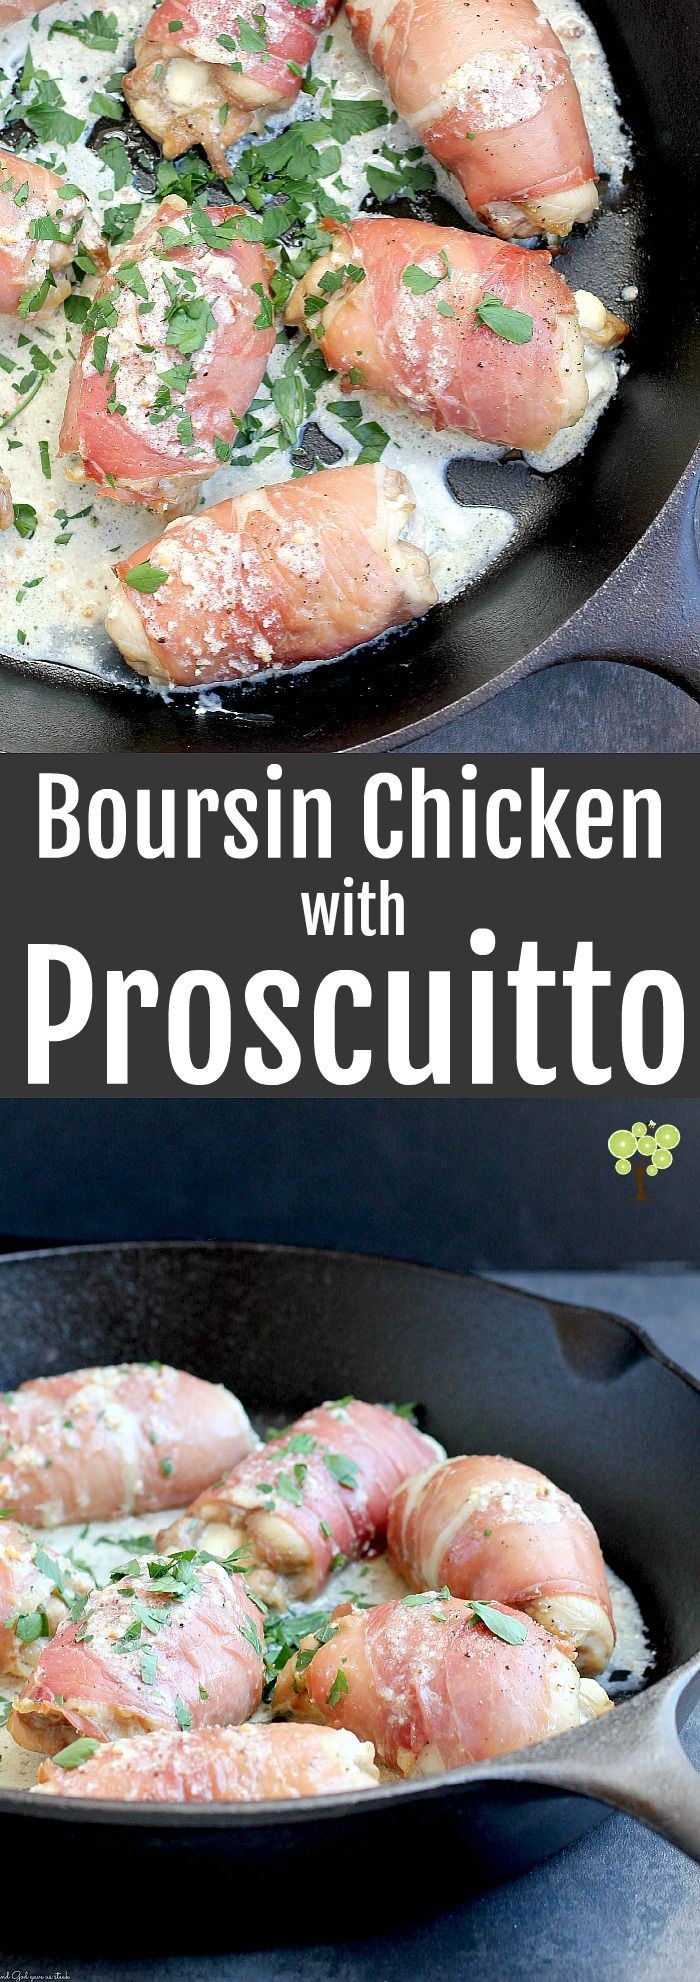 Buttery Boursin, juicy chicken, and salty prosciutto together make this an all-t…